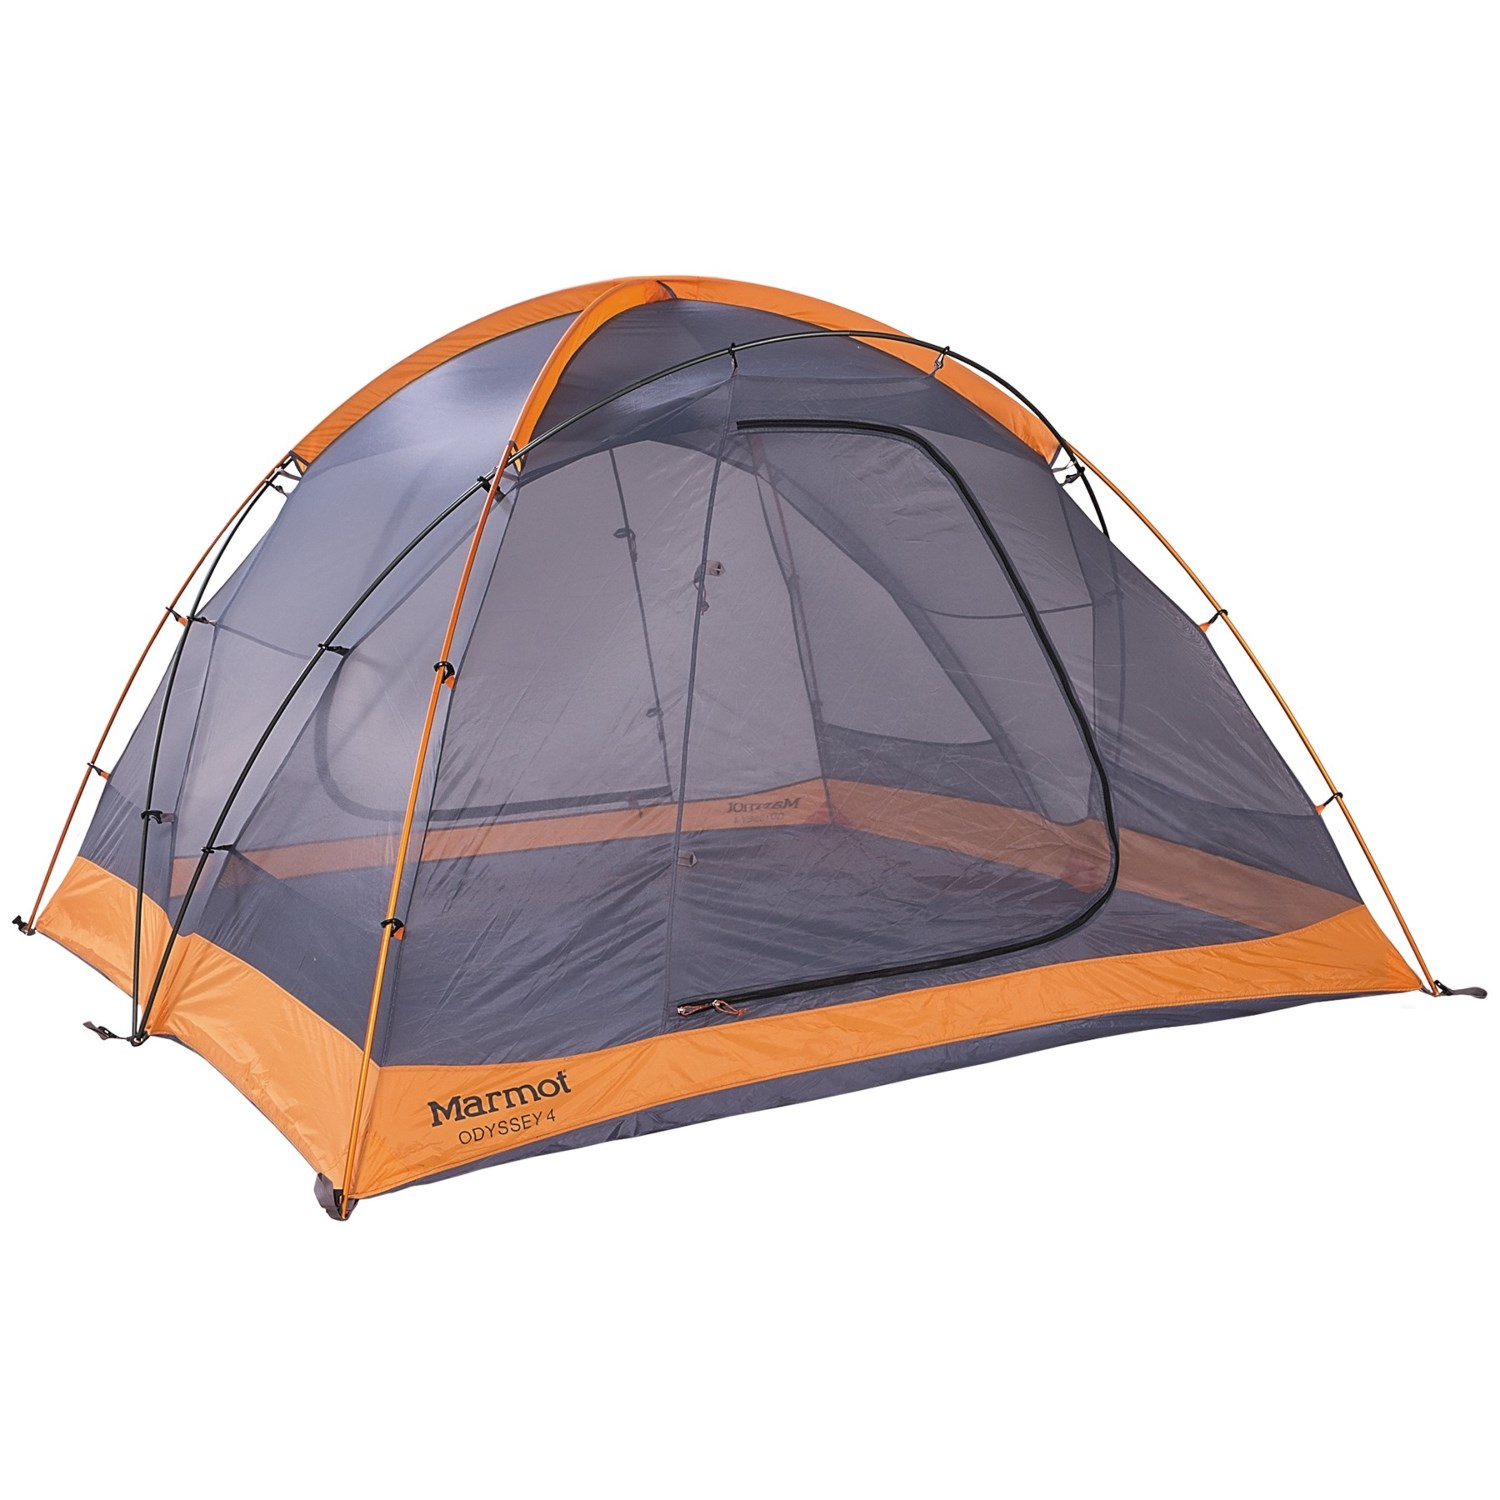 Marmot Odyssey 4 Tent - 4-Person 3-Season in Pale Pumpkin/ ...  sc 1 st  Sierra Trading Post : marmot 2 person tent - memphite.com